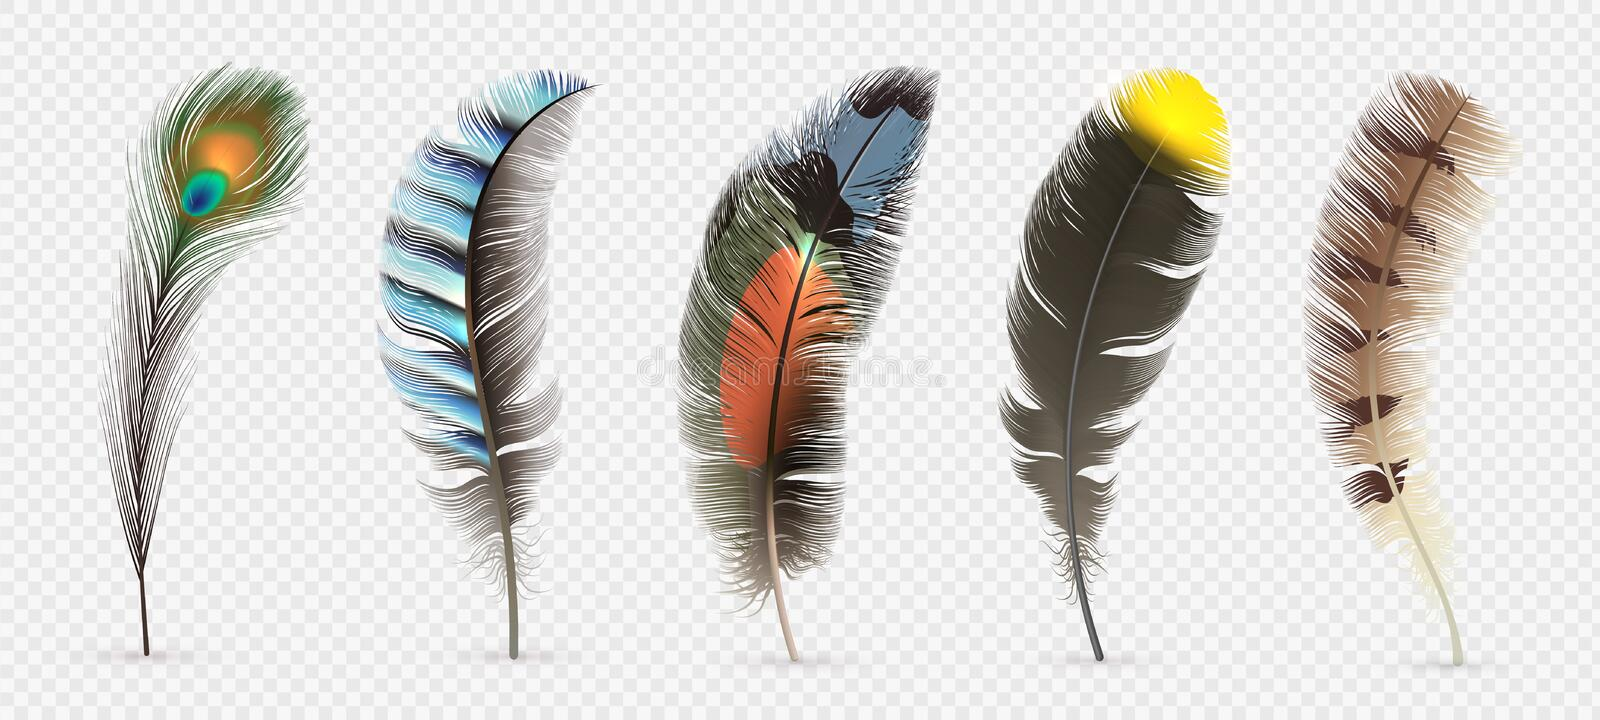 Realistic bird feathers. Detailed colorful feather of different birds. 3d vector collection isolated on transparent vector illustration